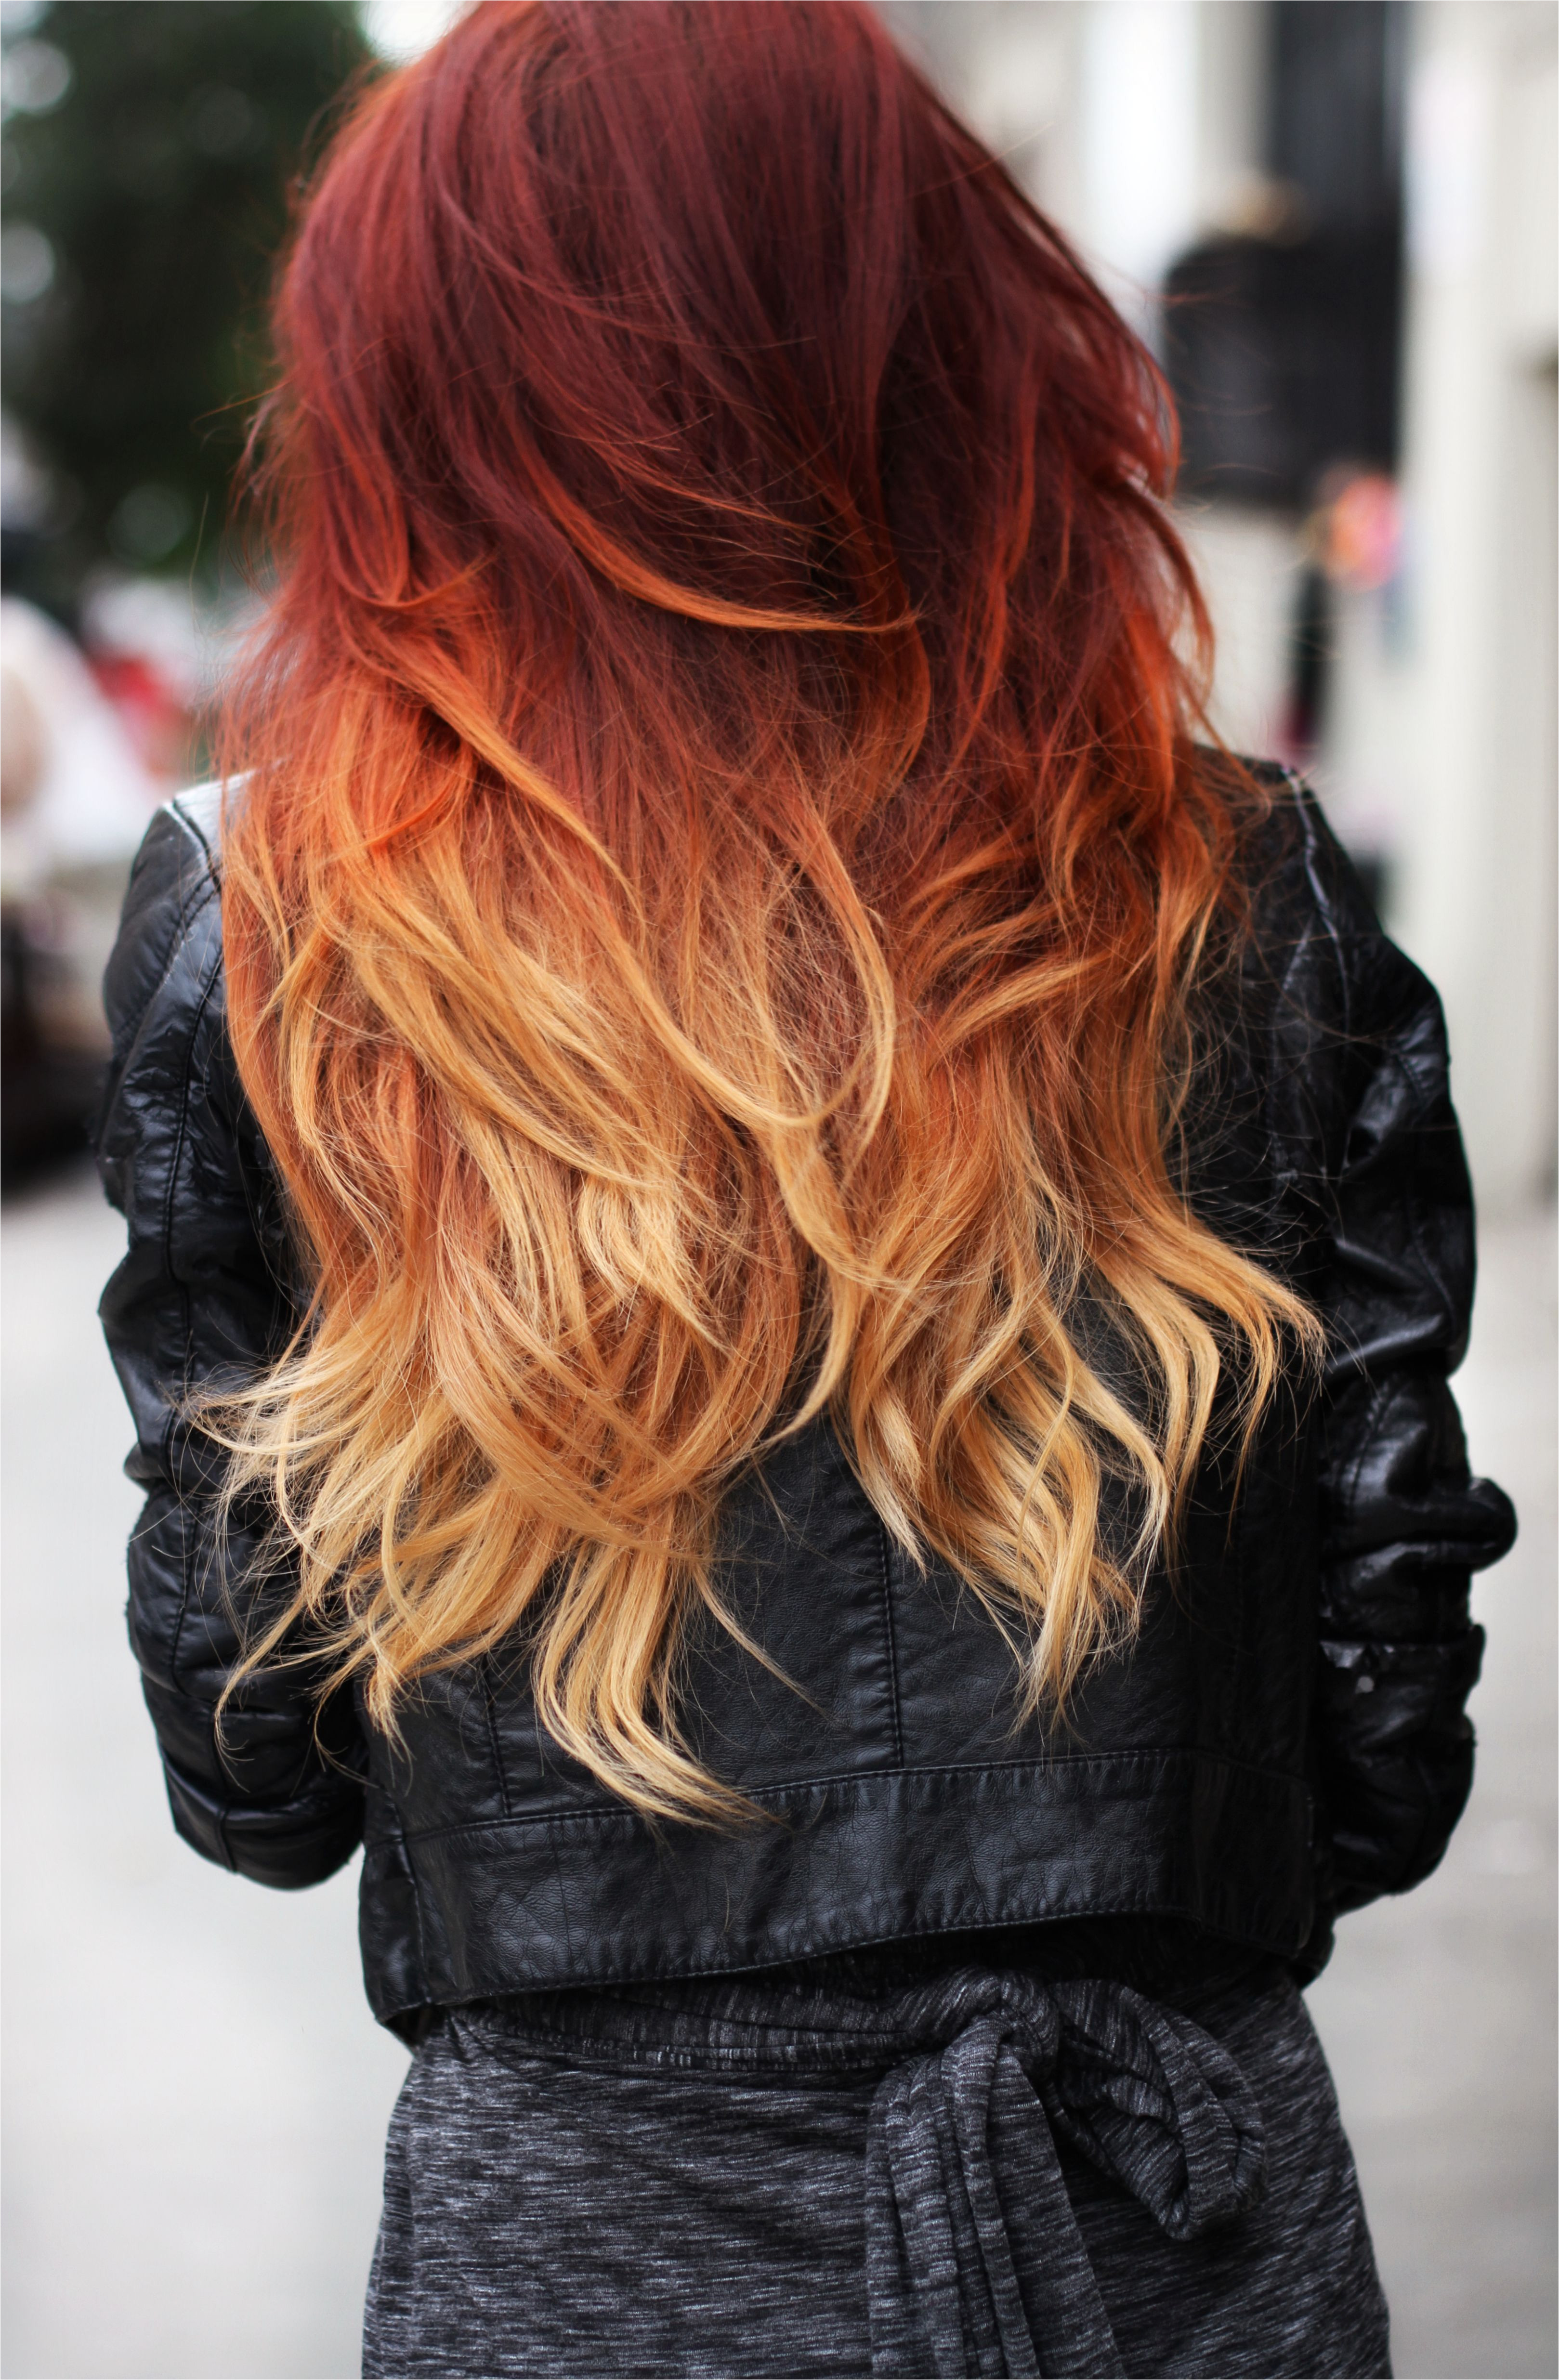 Twist on the normal brown to blonde Red Blonde Ombre